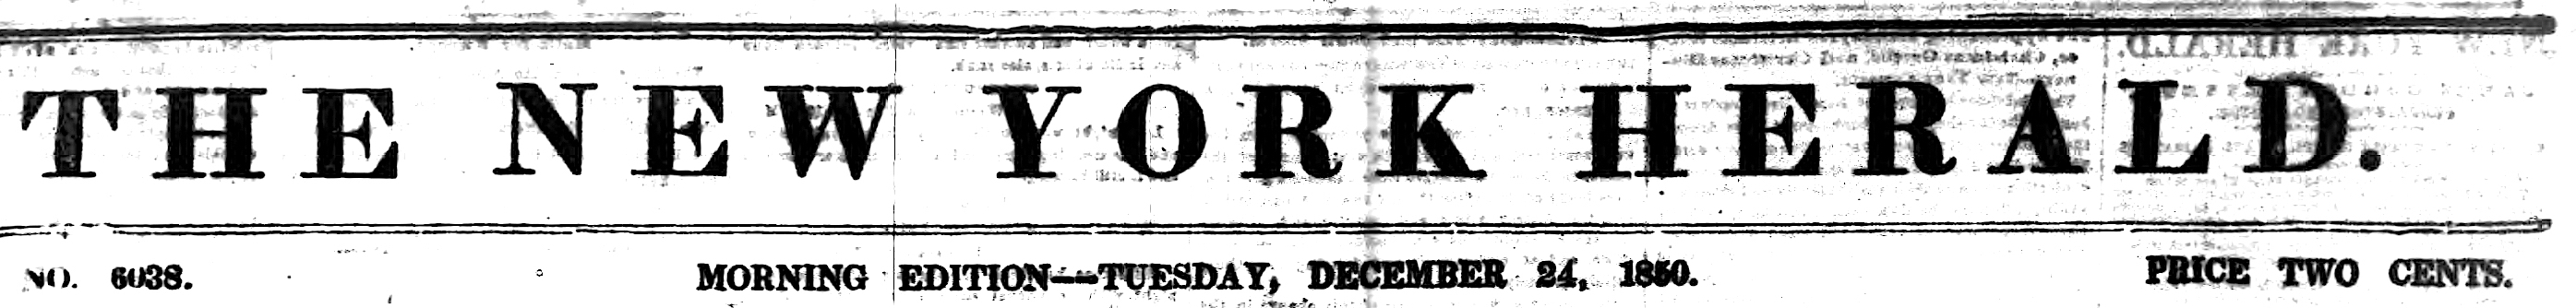 The New York Herald in 1850 (Wikimedia)